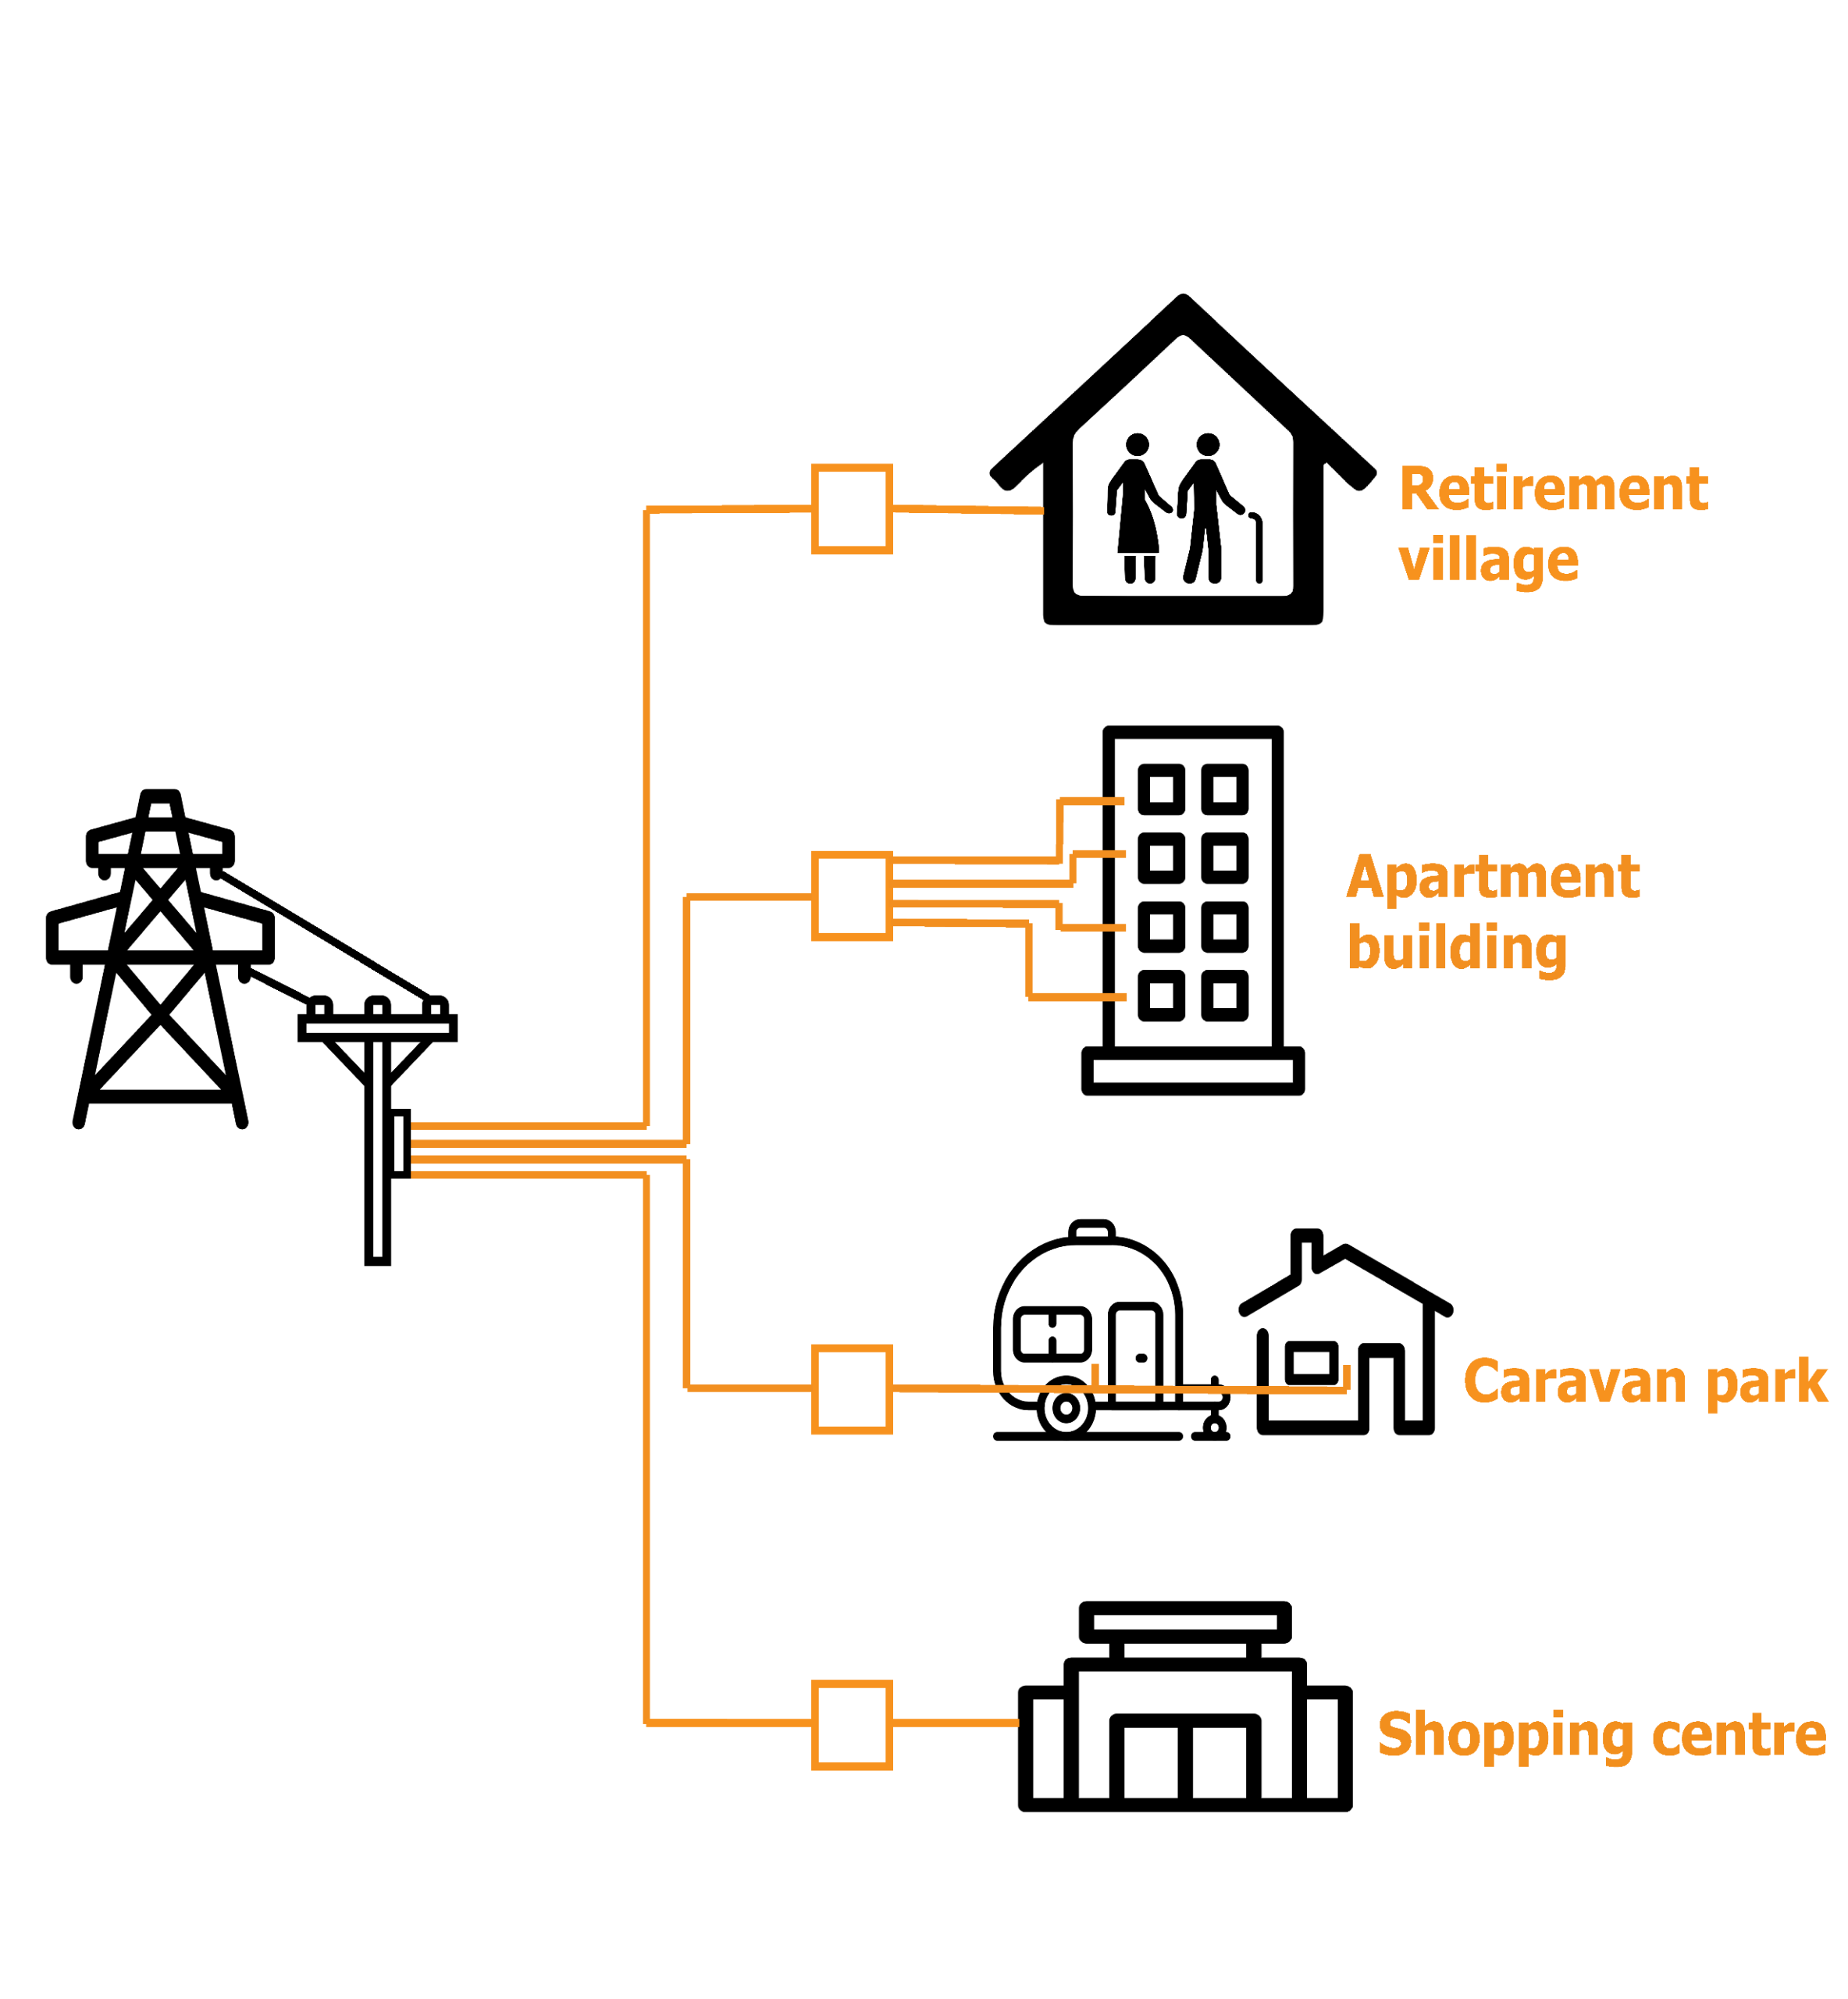 This is an image showing the links between the electricity grid and embedded networks such as retirement villages, apartment buildings, caravan parks and shopping centres. It shows how the grid feeds 'gate' meters than go on to feed individual customers within an embedded network.